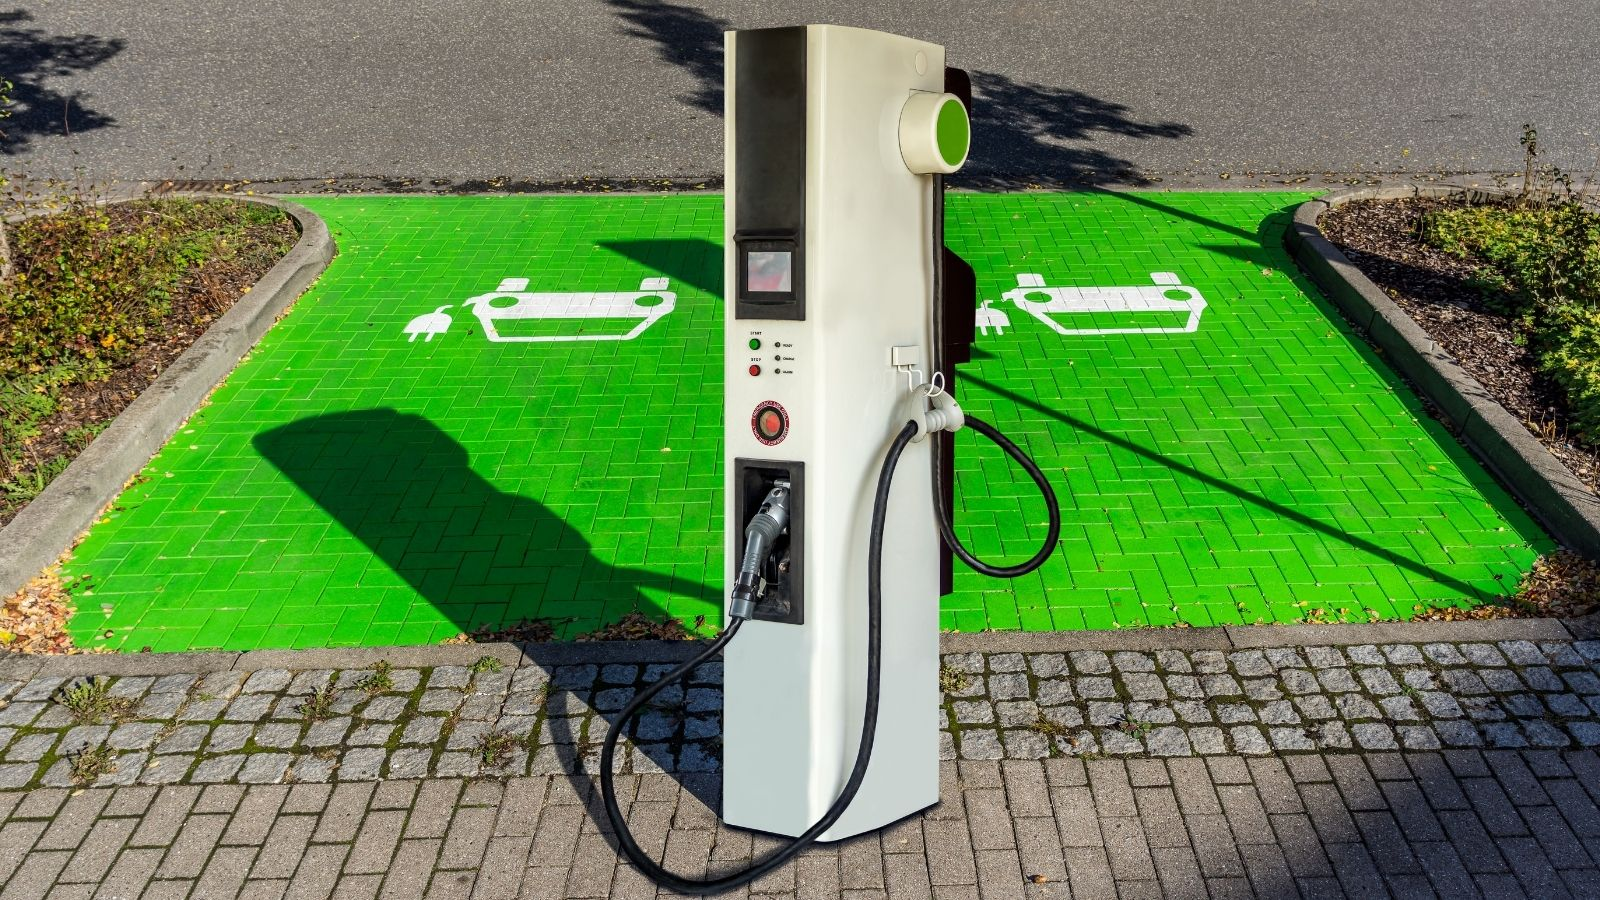 Fuel Cards UK: Fuel Stations in the Future